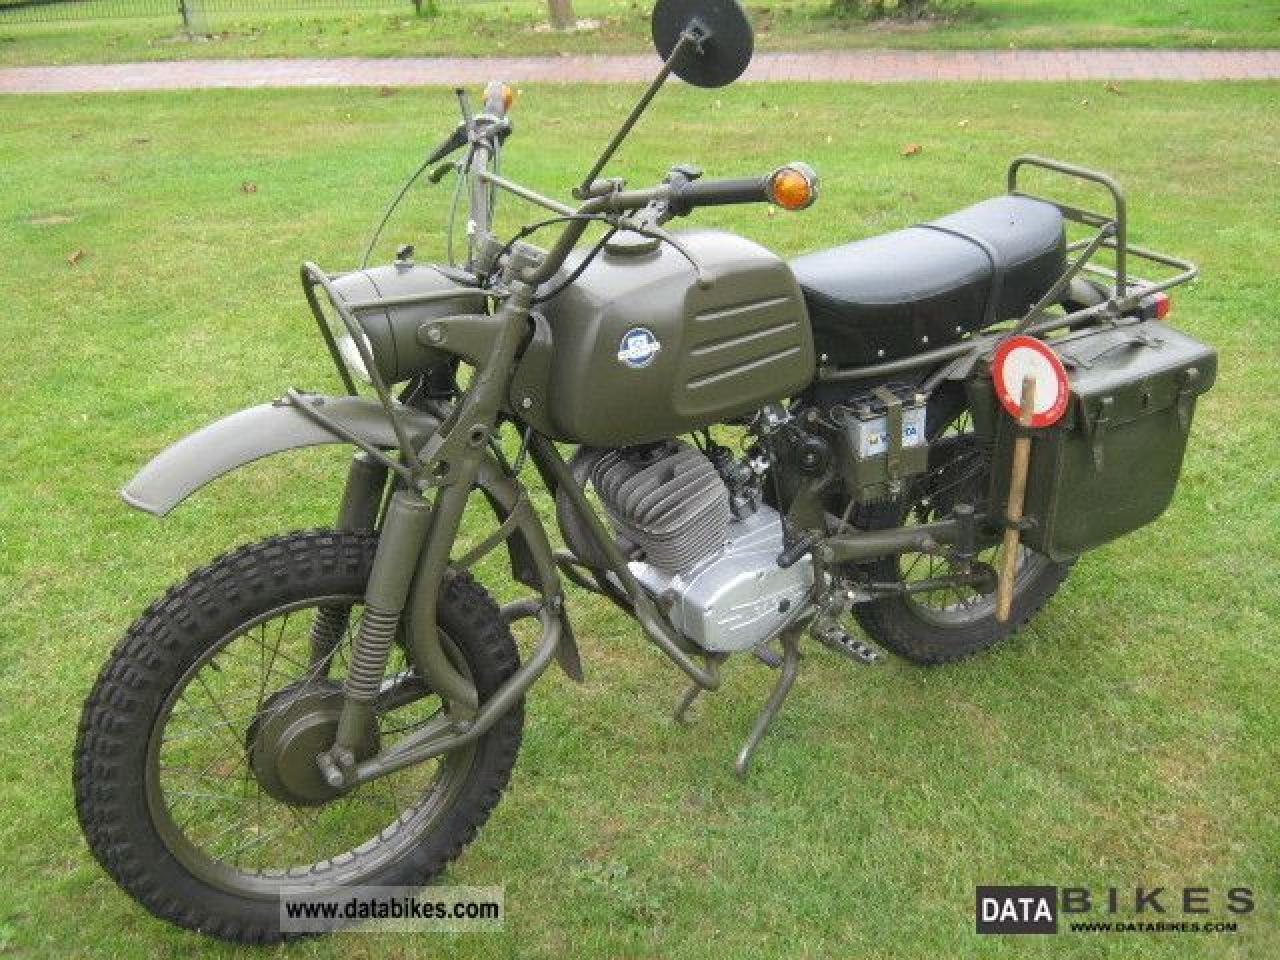 Hercules K 125 Military 1983 images #74545